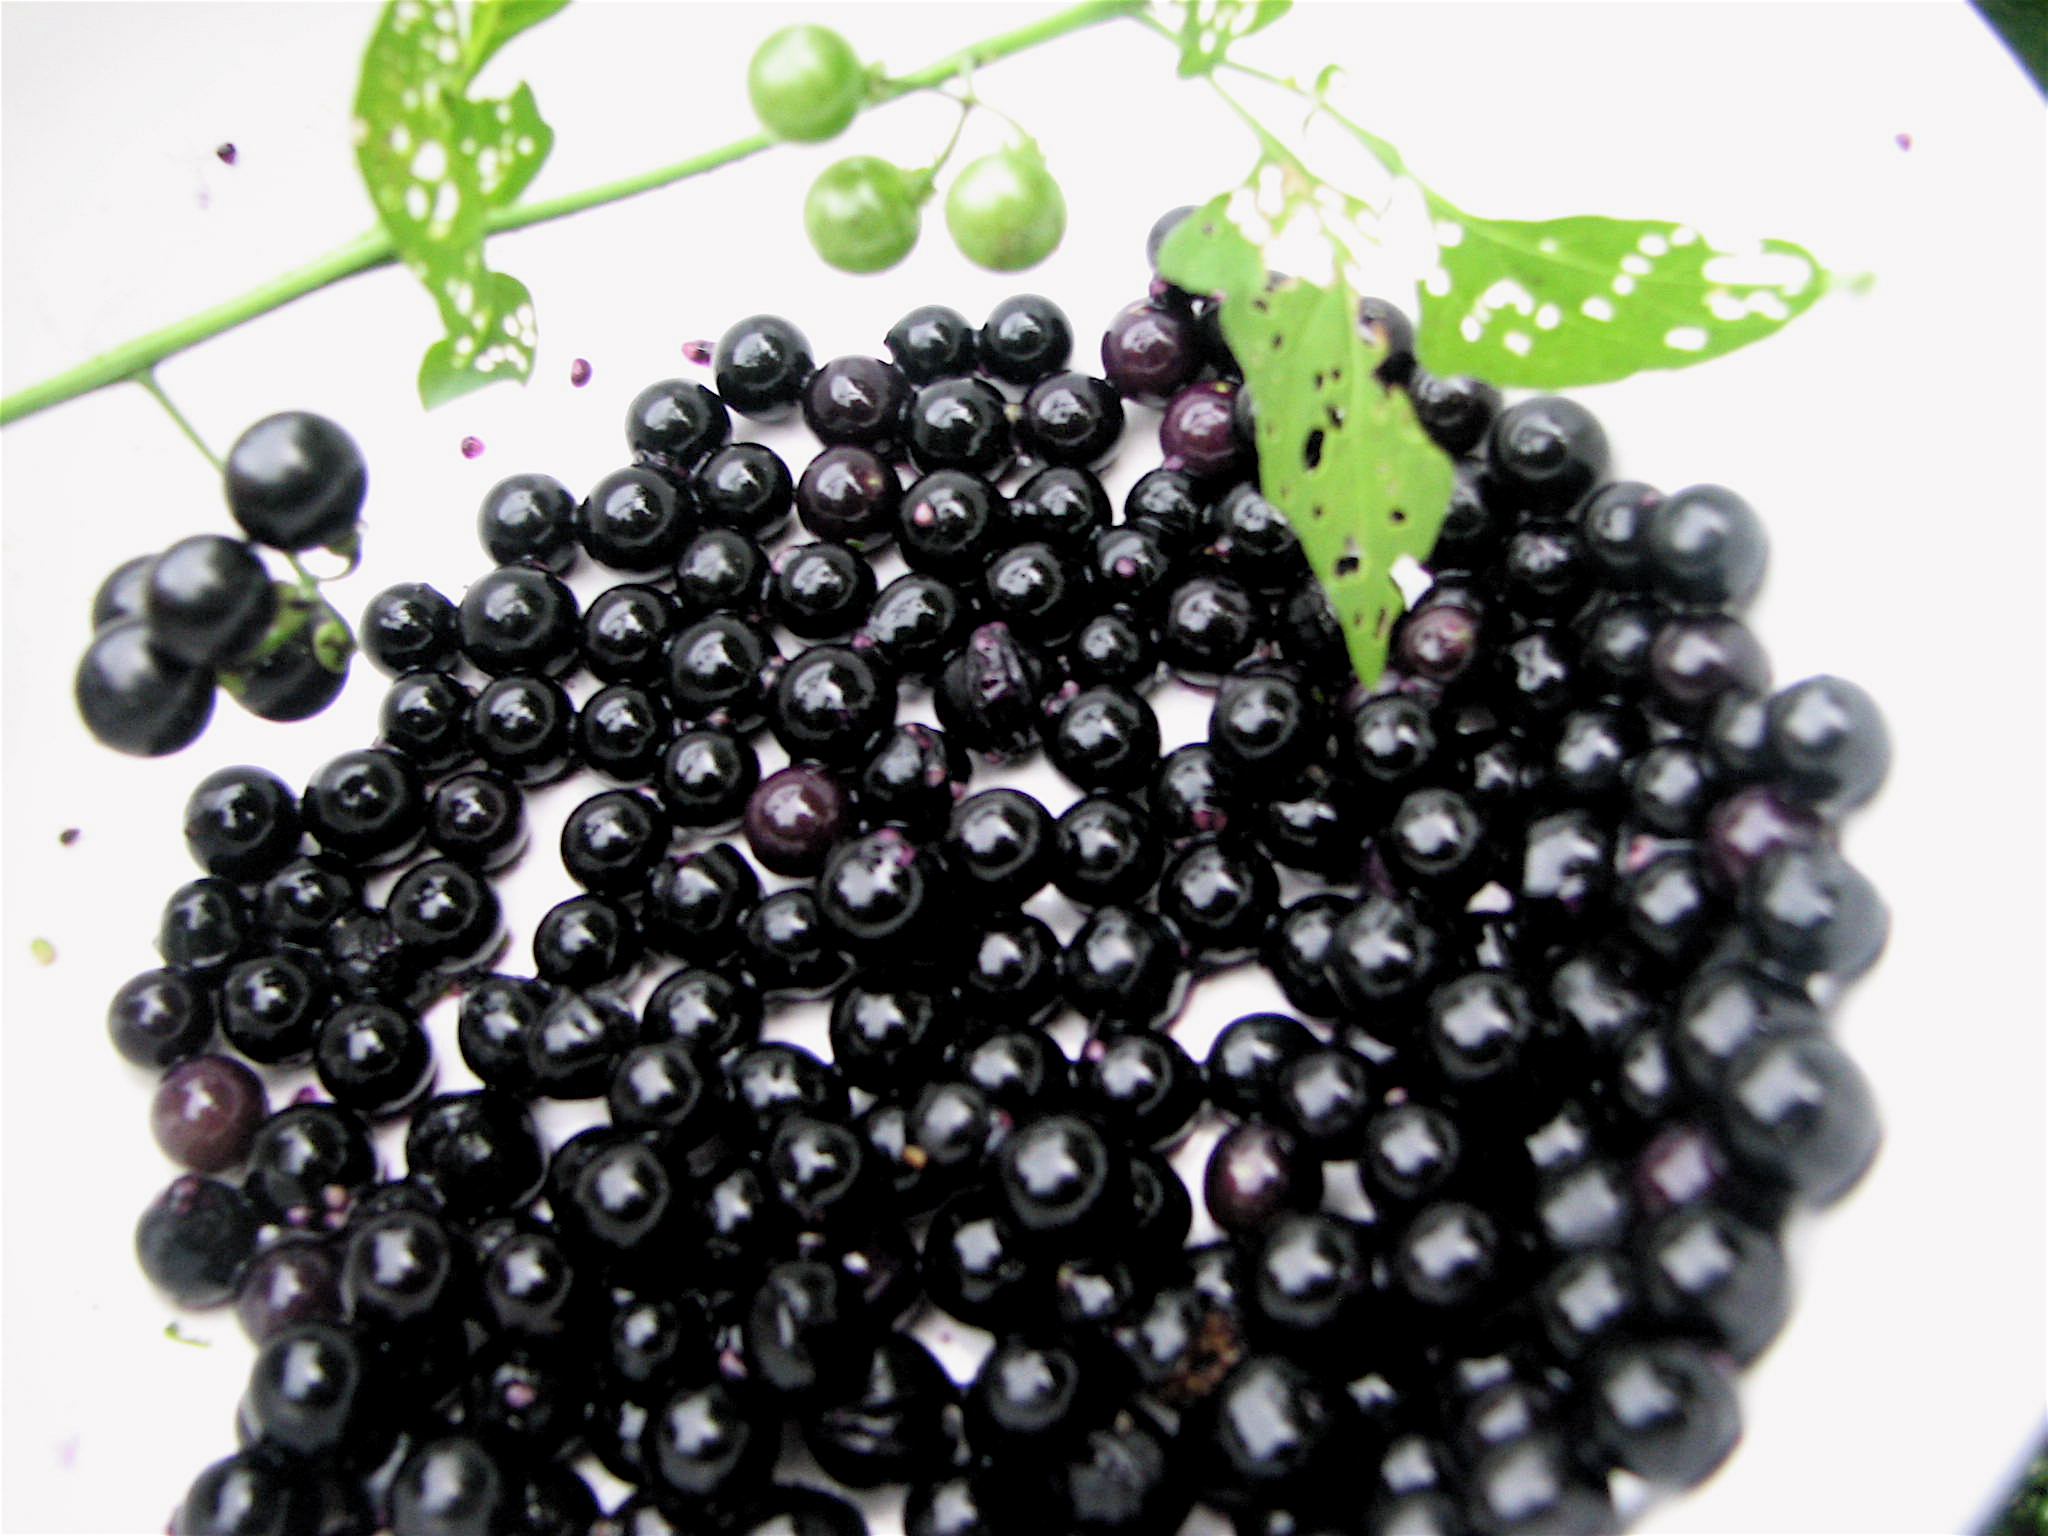 So For The Record, Garden Huckleberry Available Through Commercial Sources  Today Is Not The Same As The Solanacea Marketed Today As Sunberrry.